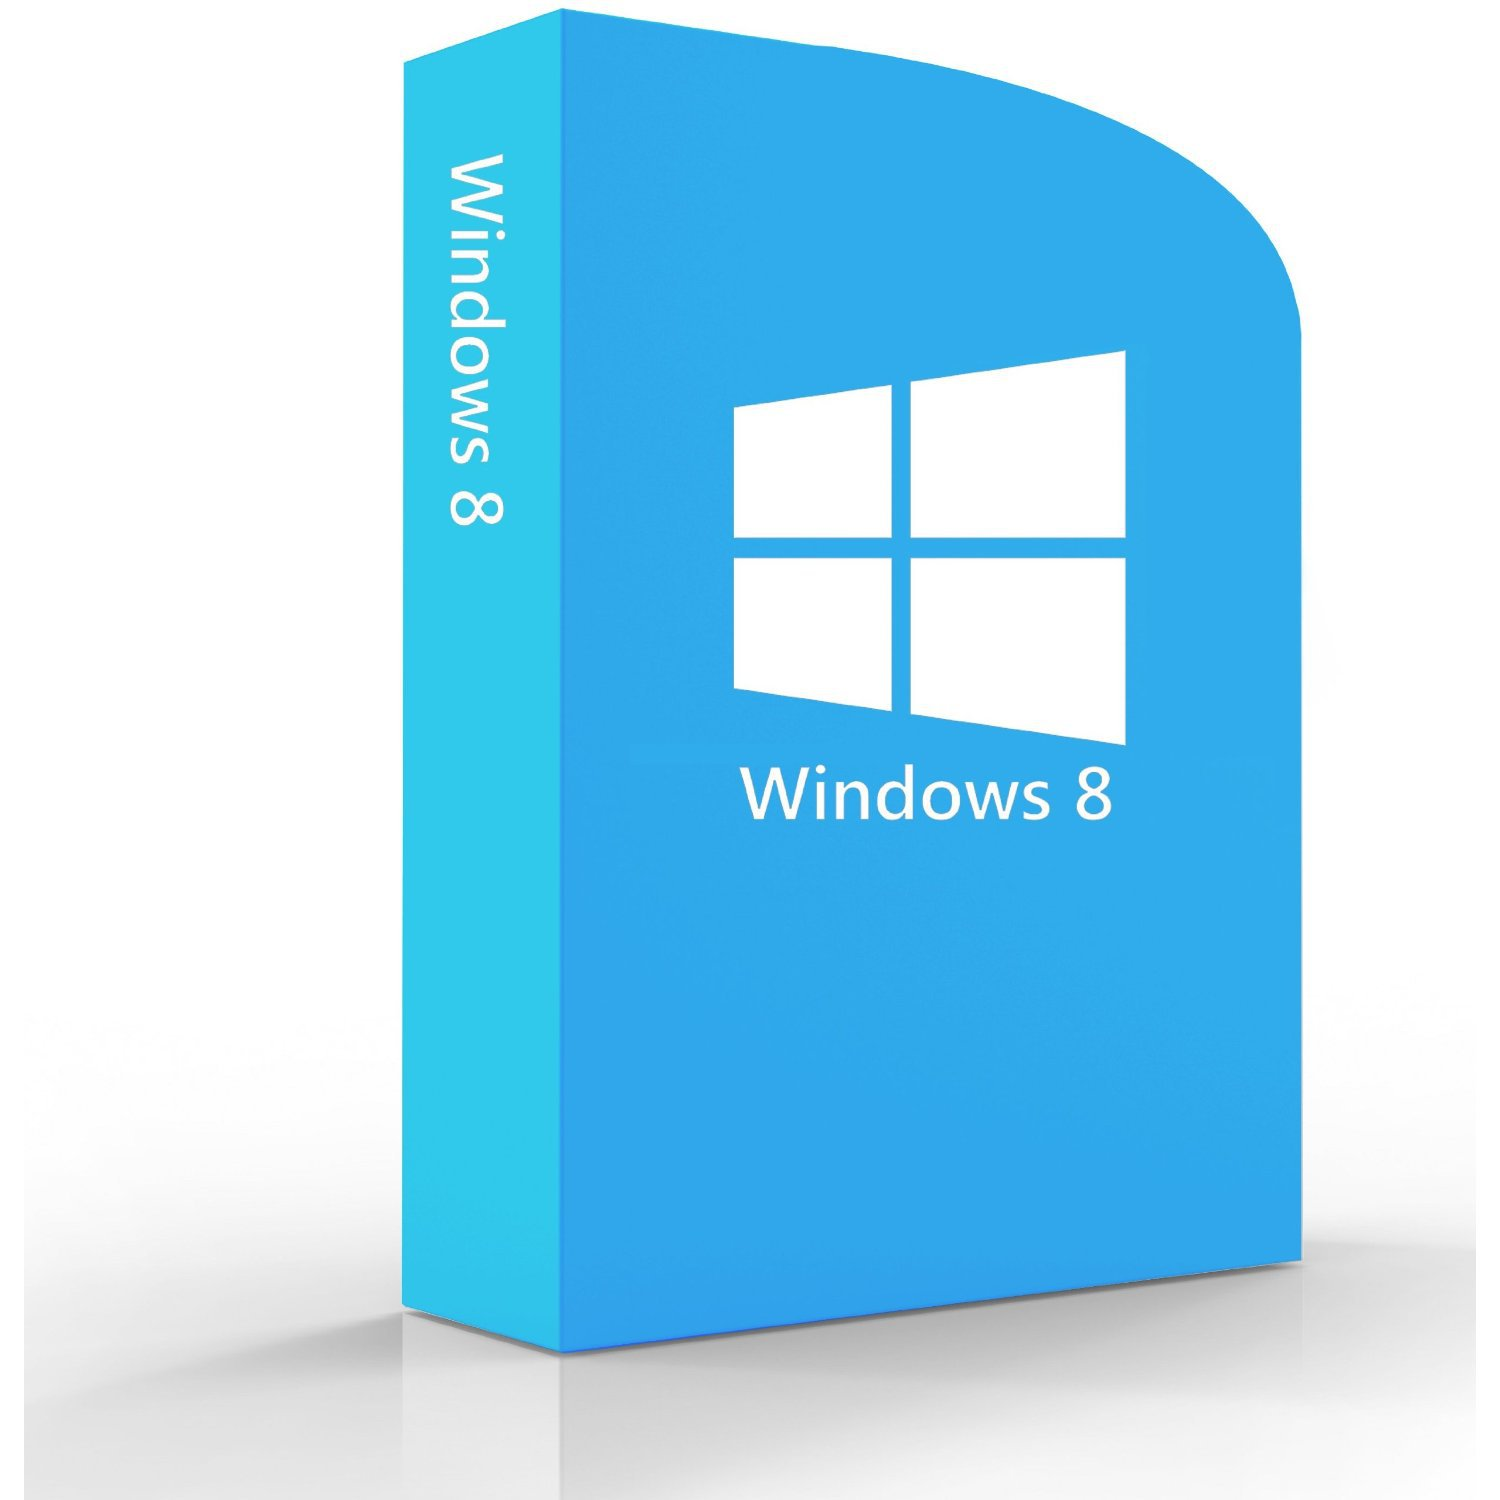 Windows 8 professional x86 activator serials iso